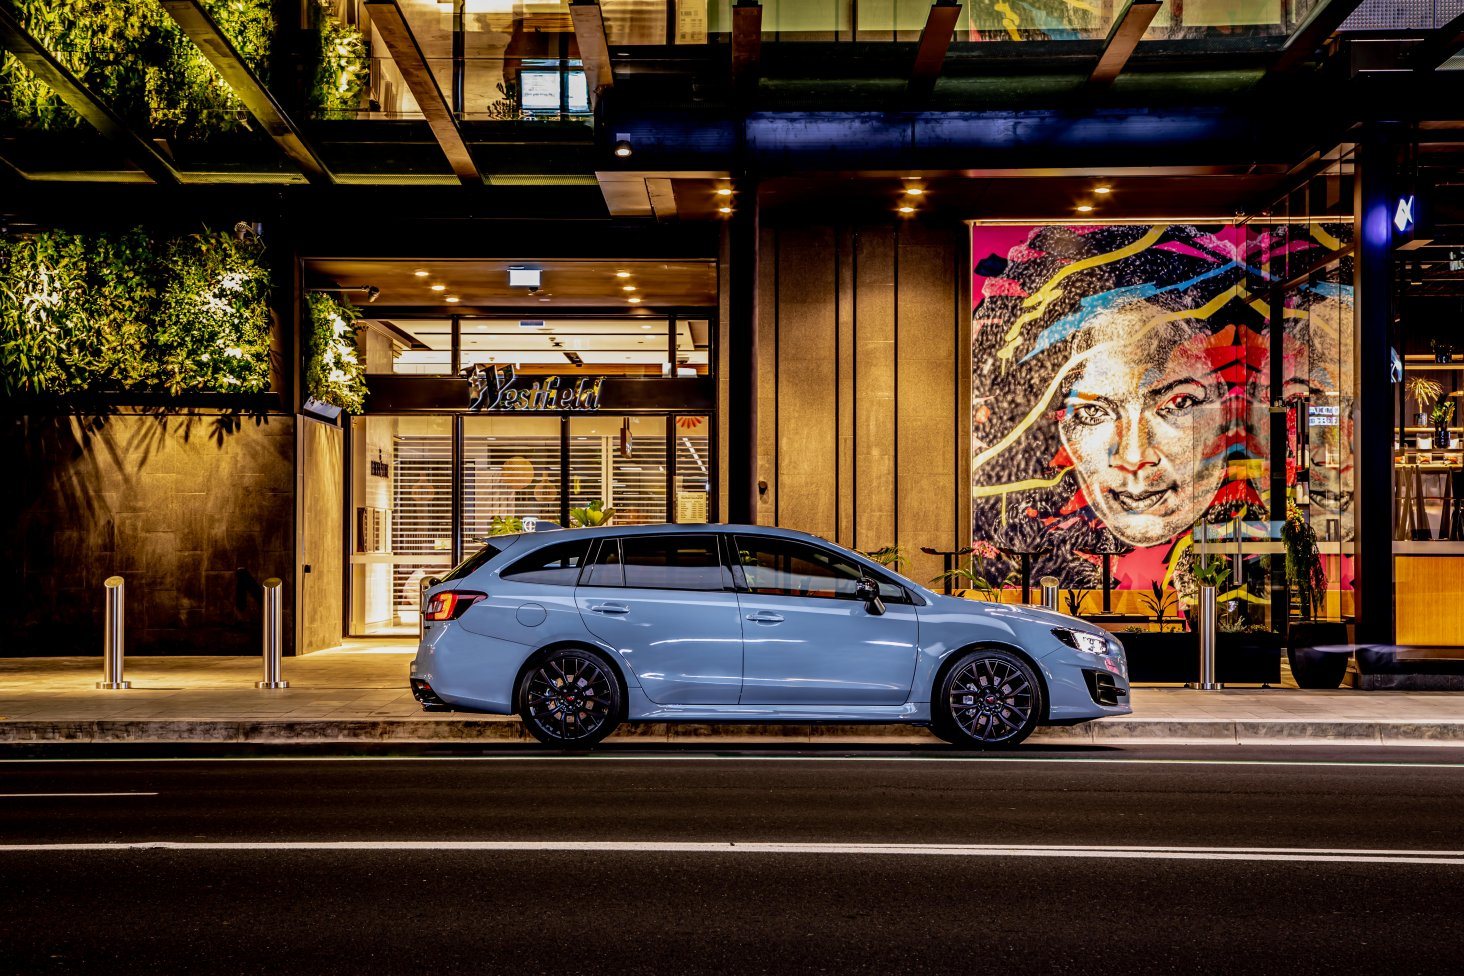 The 2020 Subaru Levorg is now available in Cool Grey